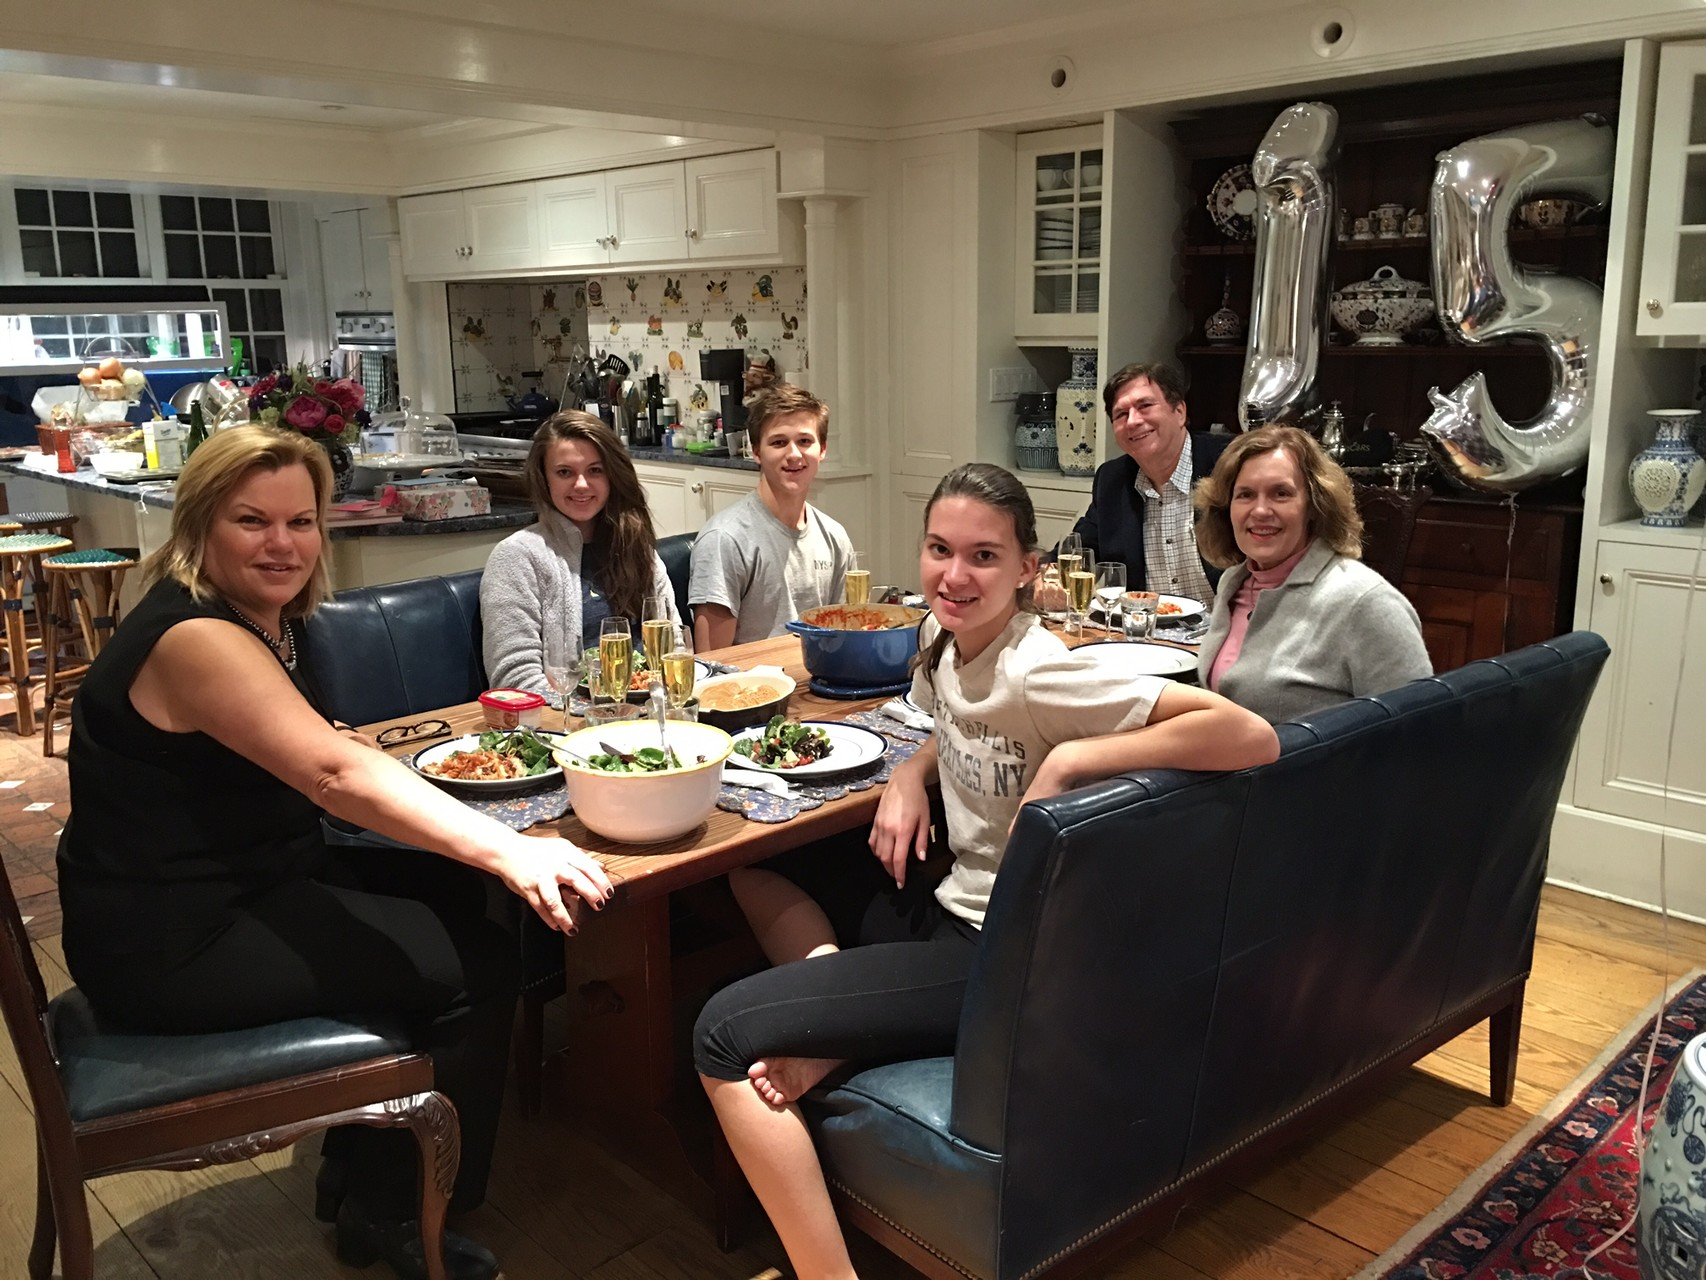 Celeste, Ellie, Jack, John, Lorraine, Kate  Birthdays 2-25-16